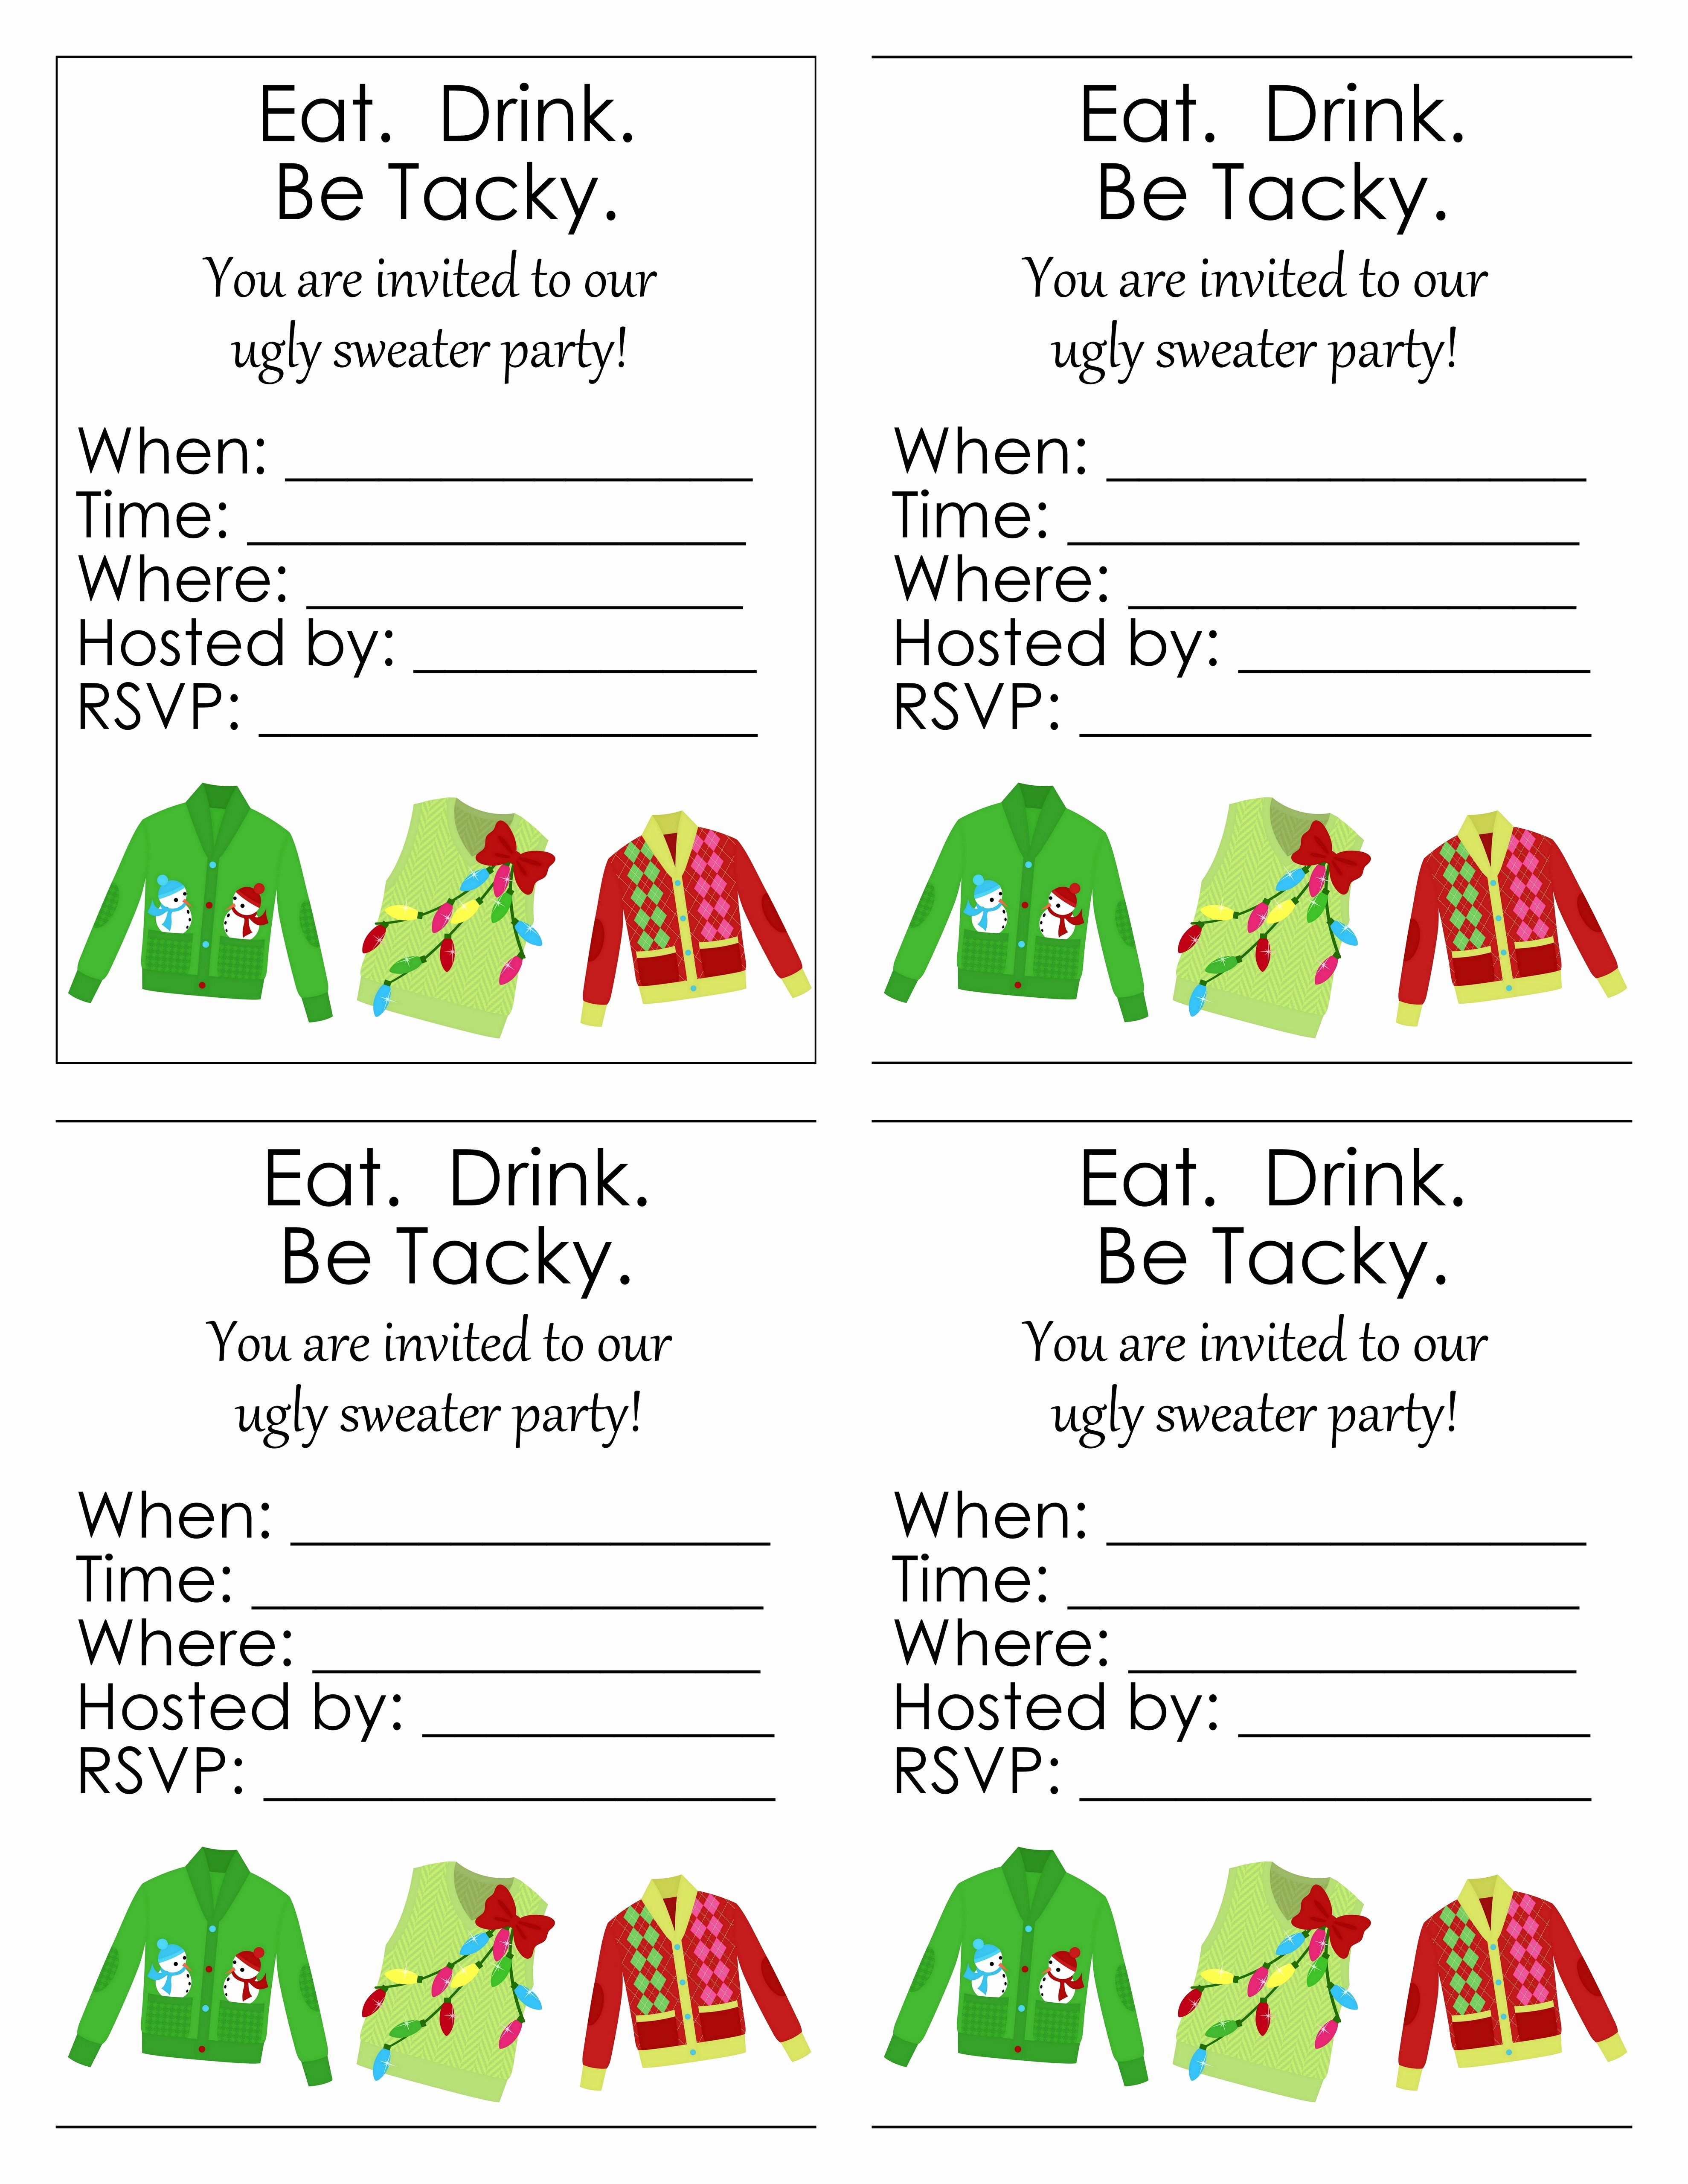 Ugly Sweater Party Invitation Template Free Fresh Ugly Sweater Party Free Printables the Country Chic Cottage